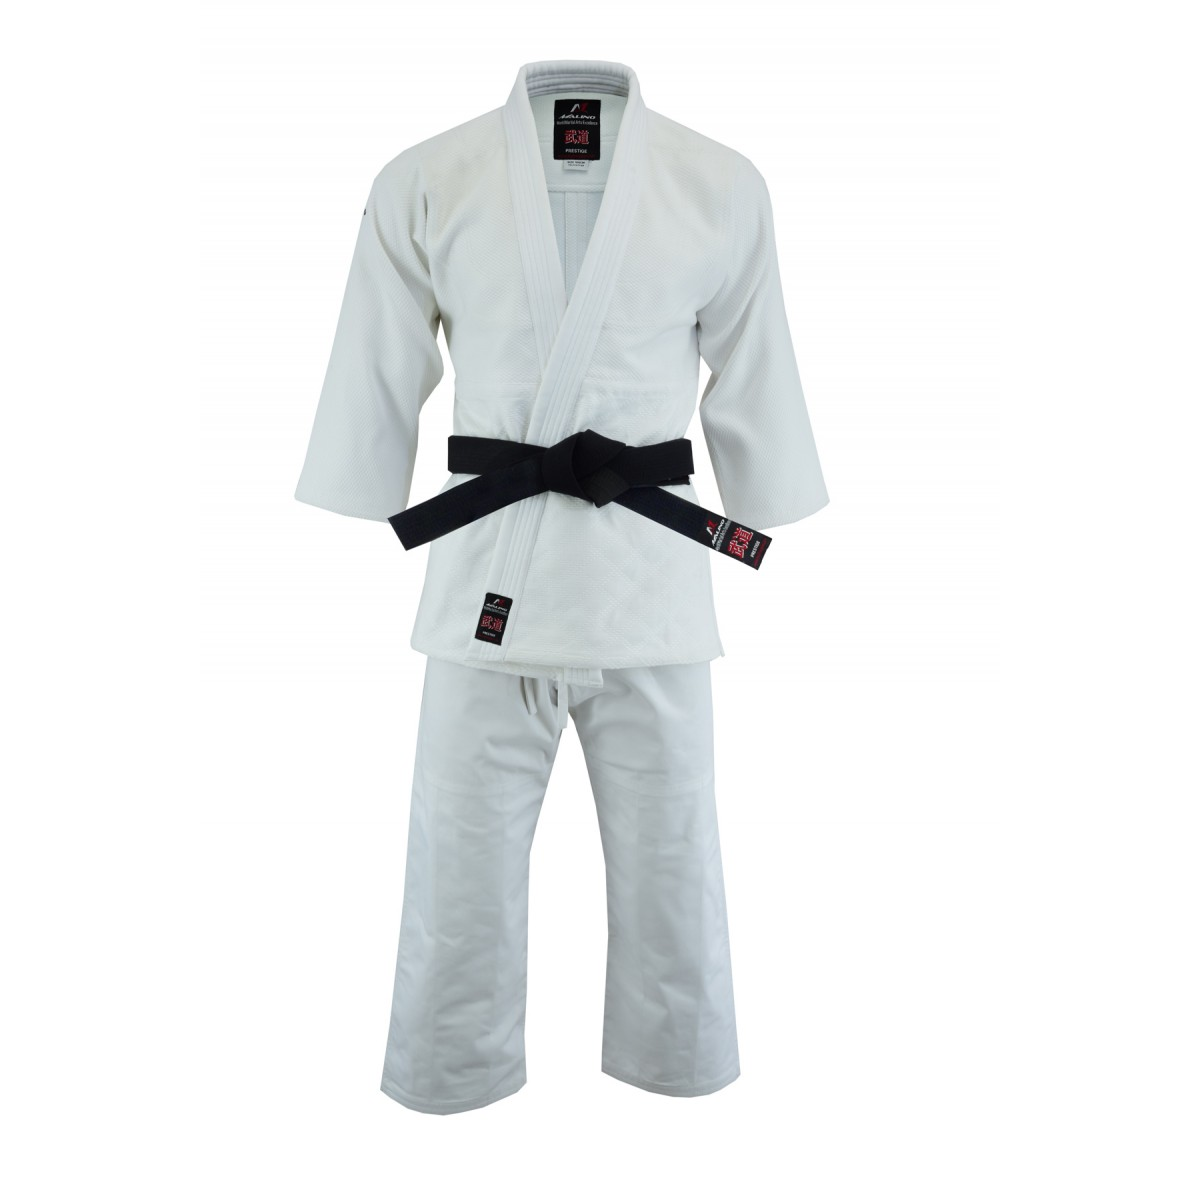 Malino Master Heavyweight Judo Suit Adult - White - 750g